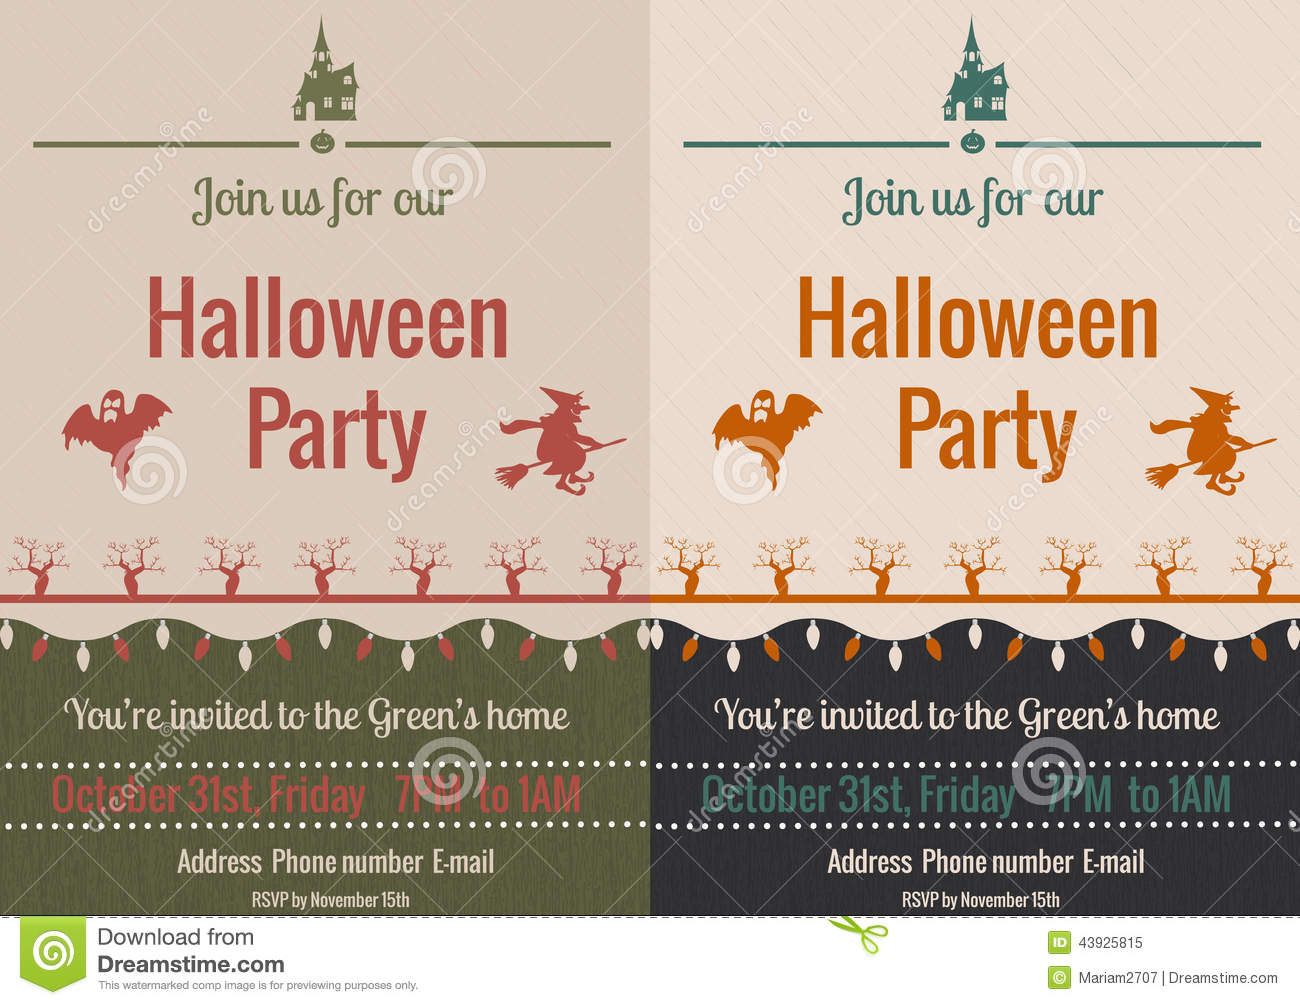 Vintage Halloween Party Flyer Stock Vector - Image: 43925815